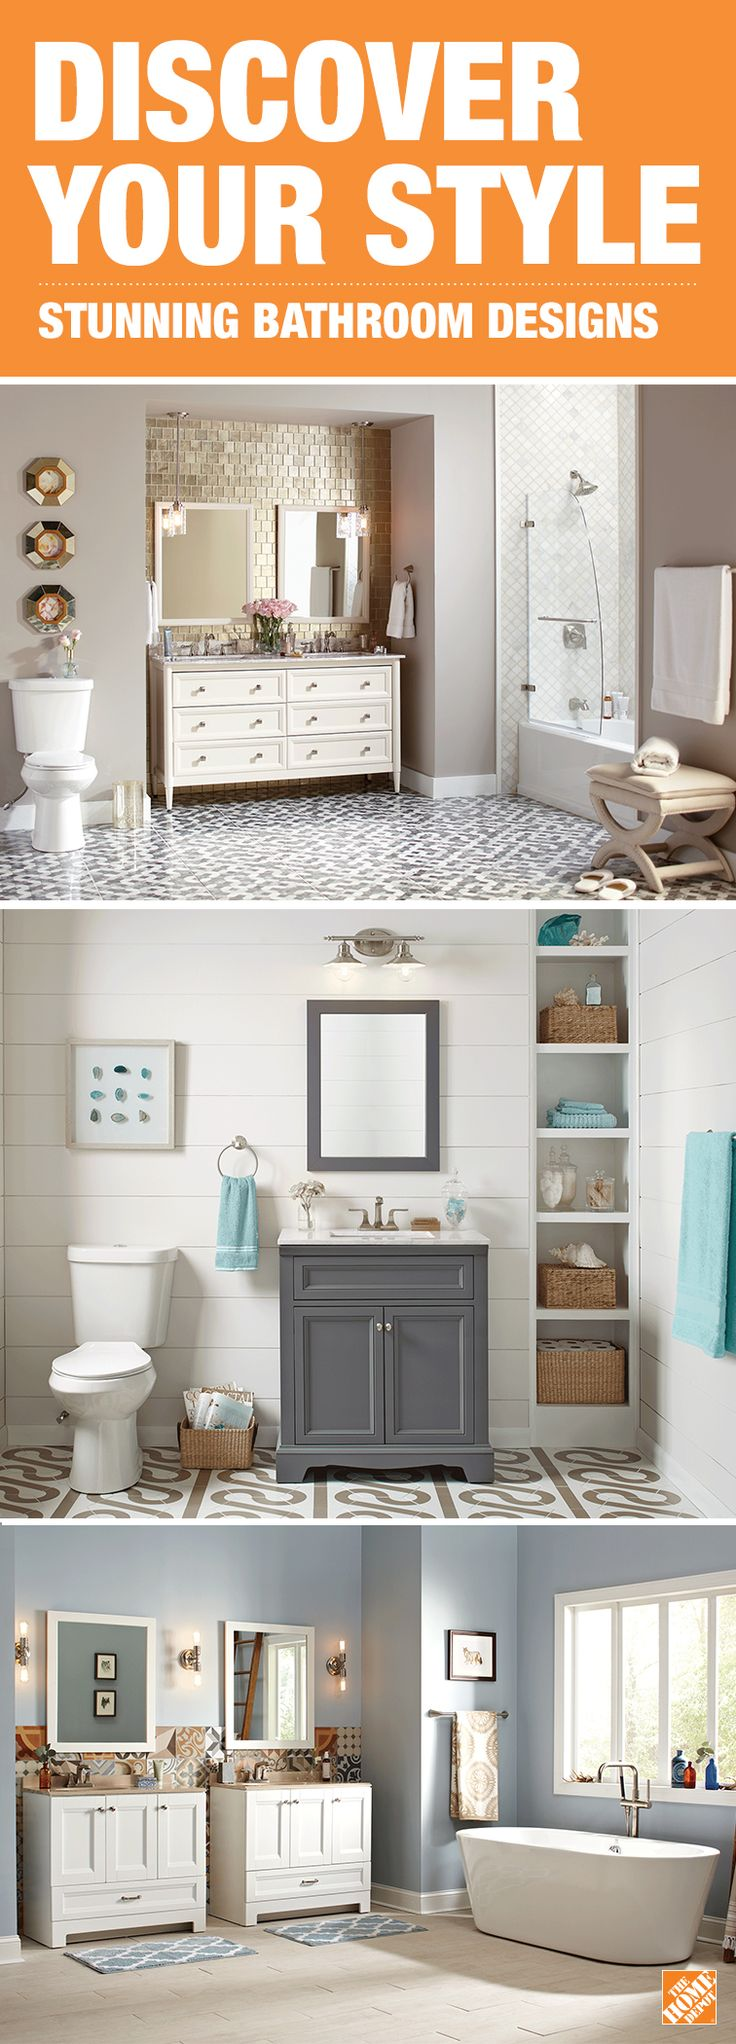 409 best bathroom design ideas images on pinterest